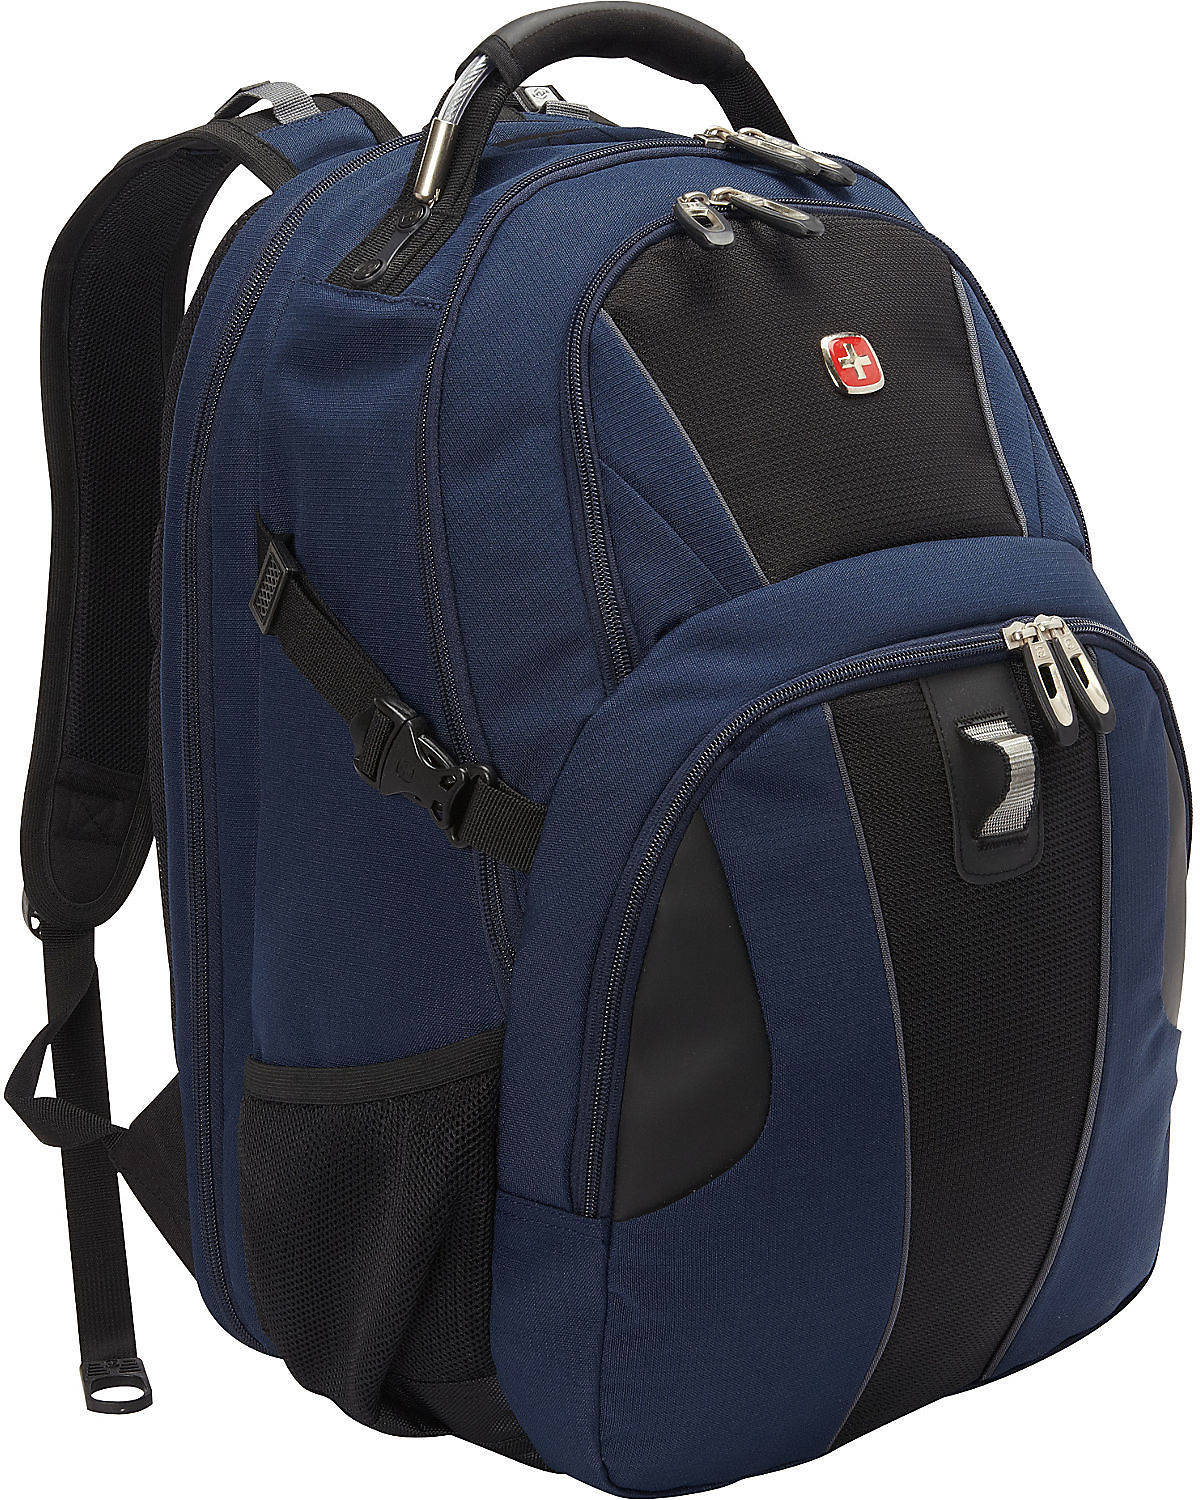 Swiss Gear Backpack Deals tKwFRXQZ